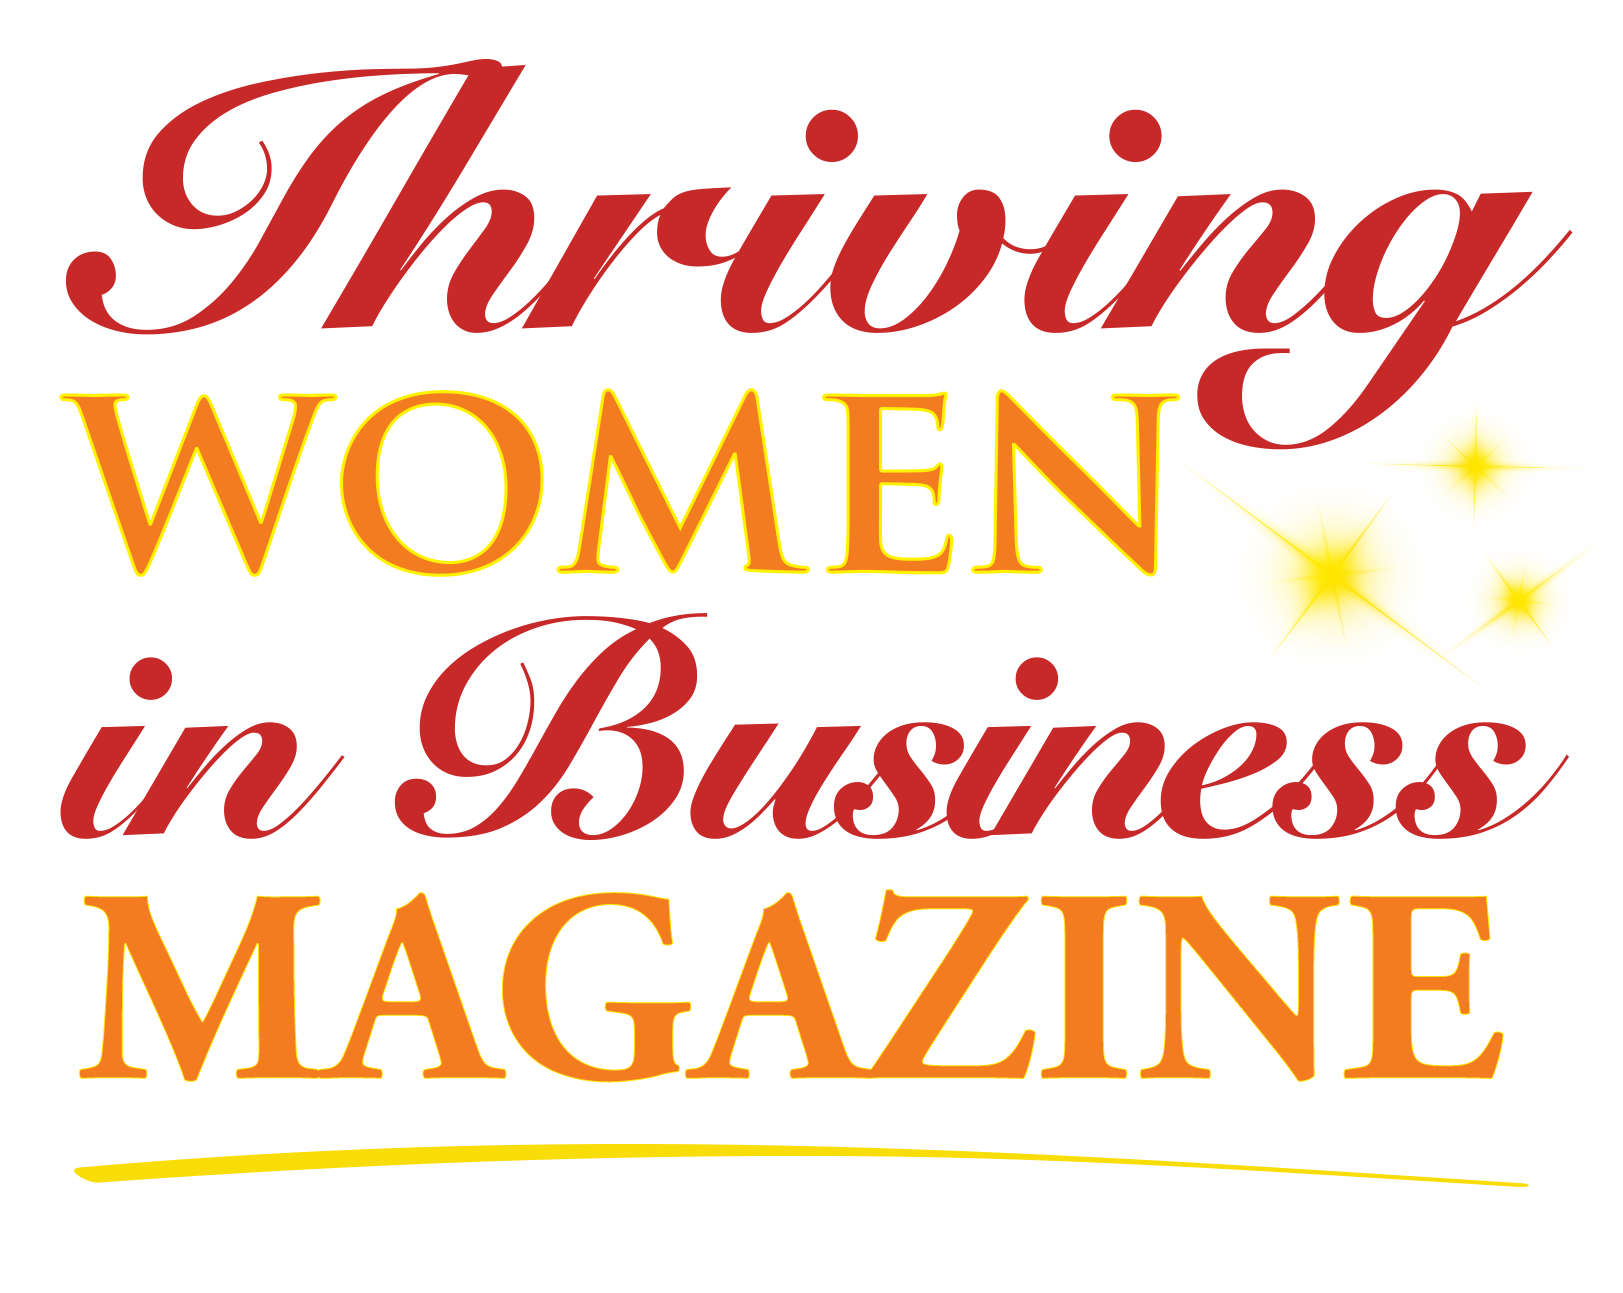 Thriving Women in Business Magazine